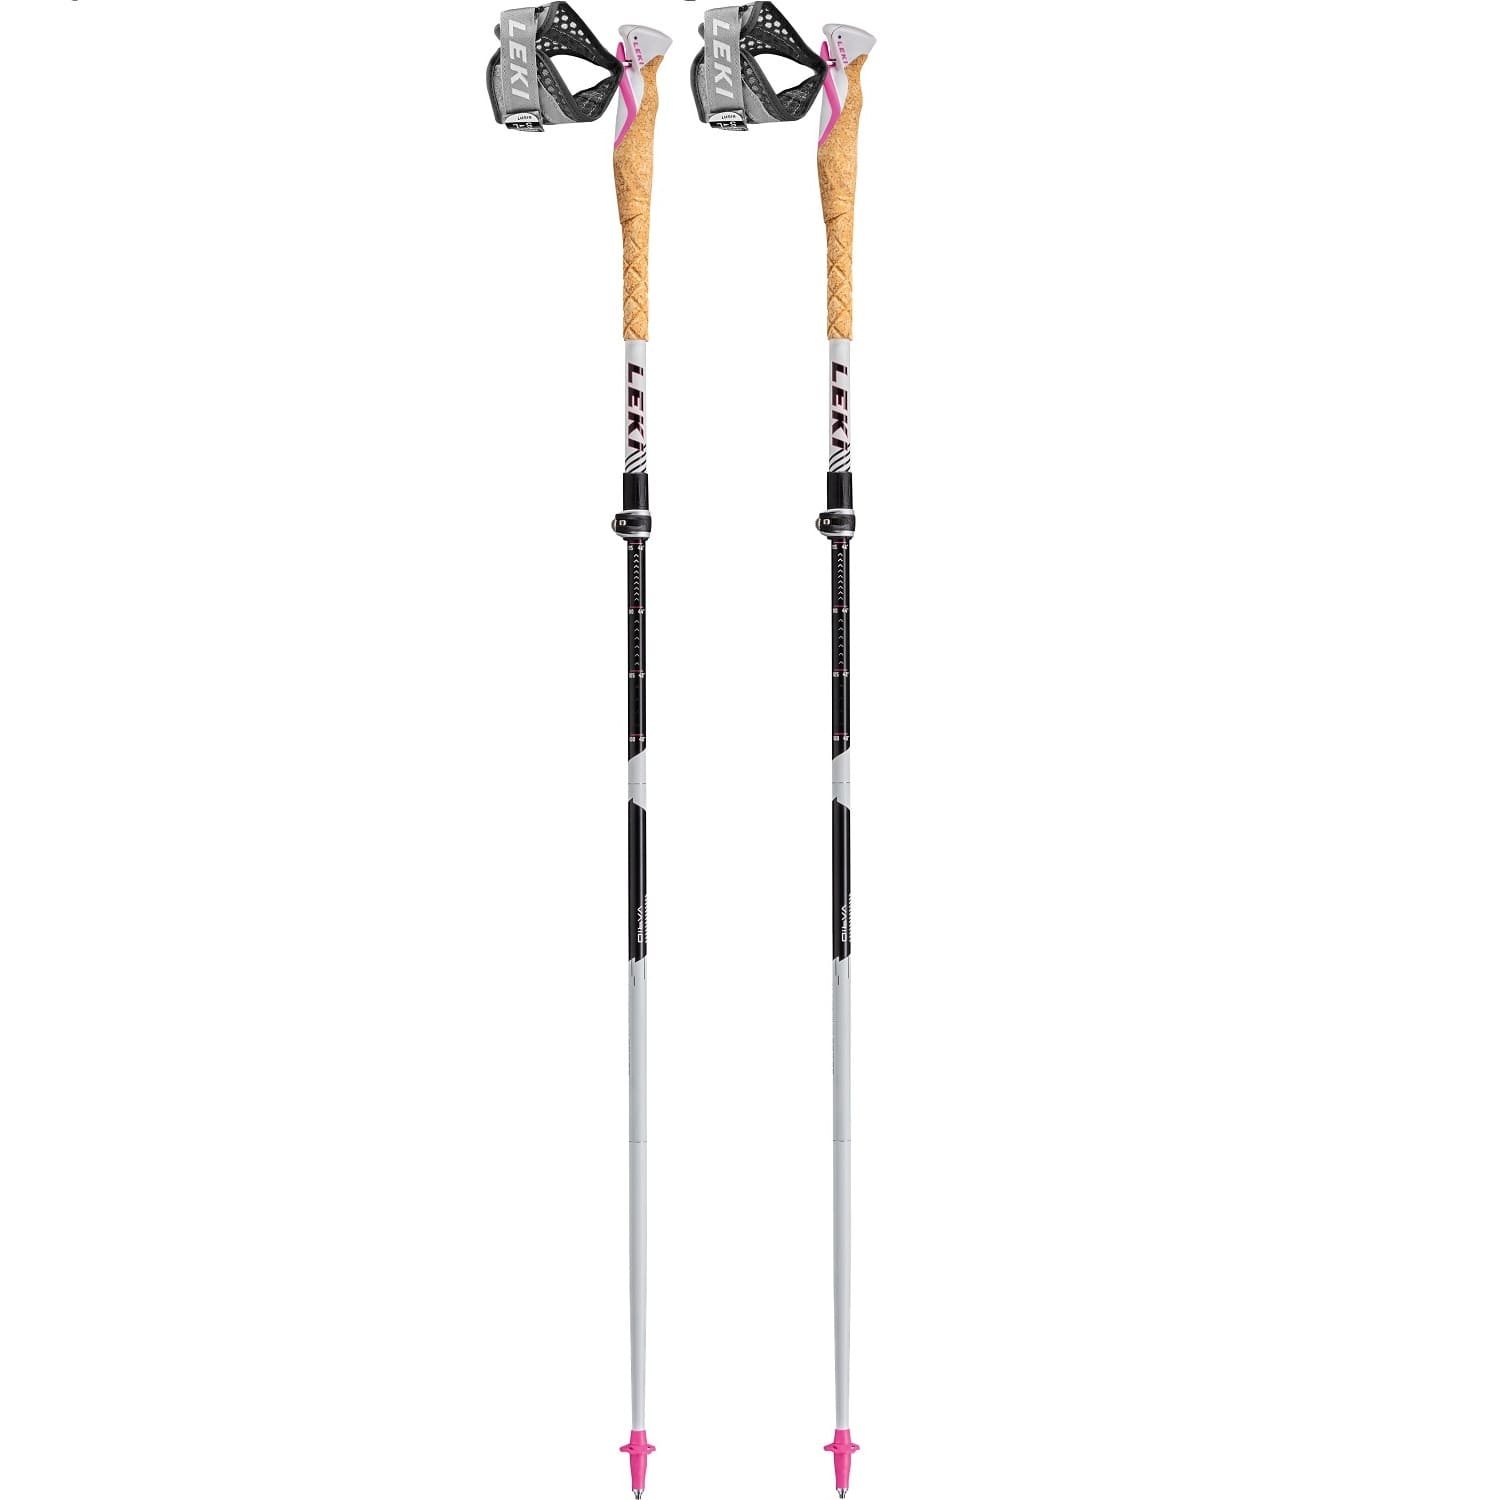 Leki MCT Vario TA Women White/Black/Rhodaminered - Uni